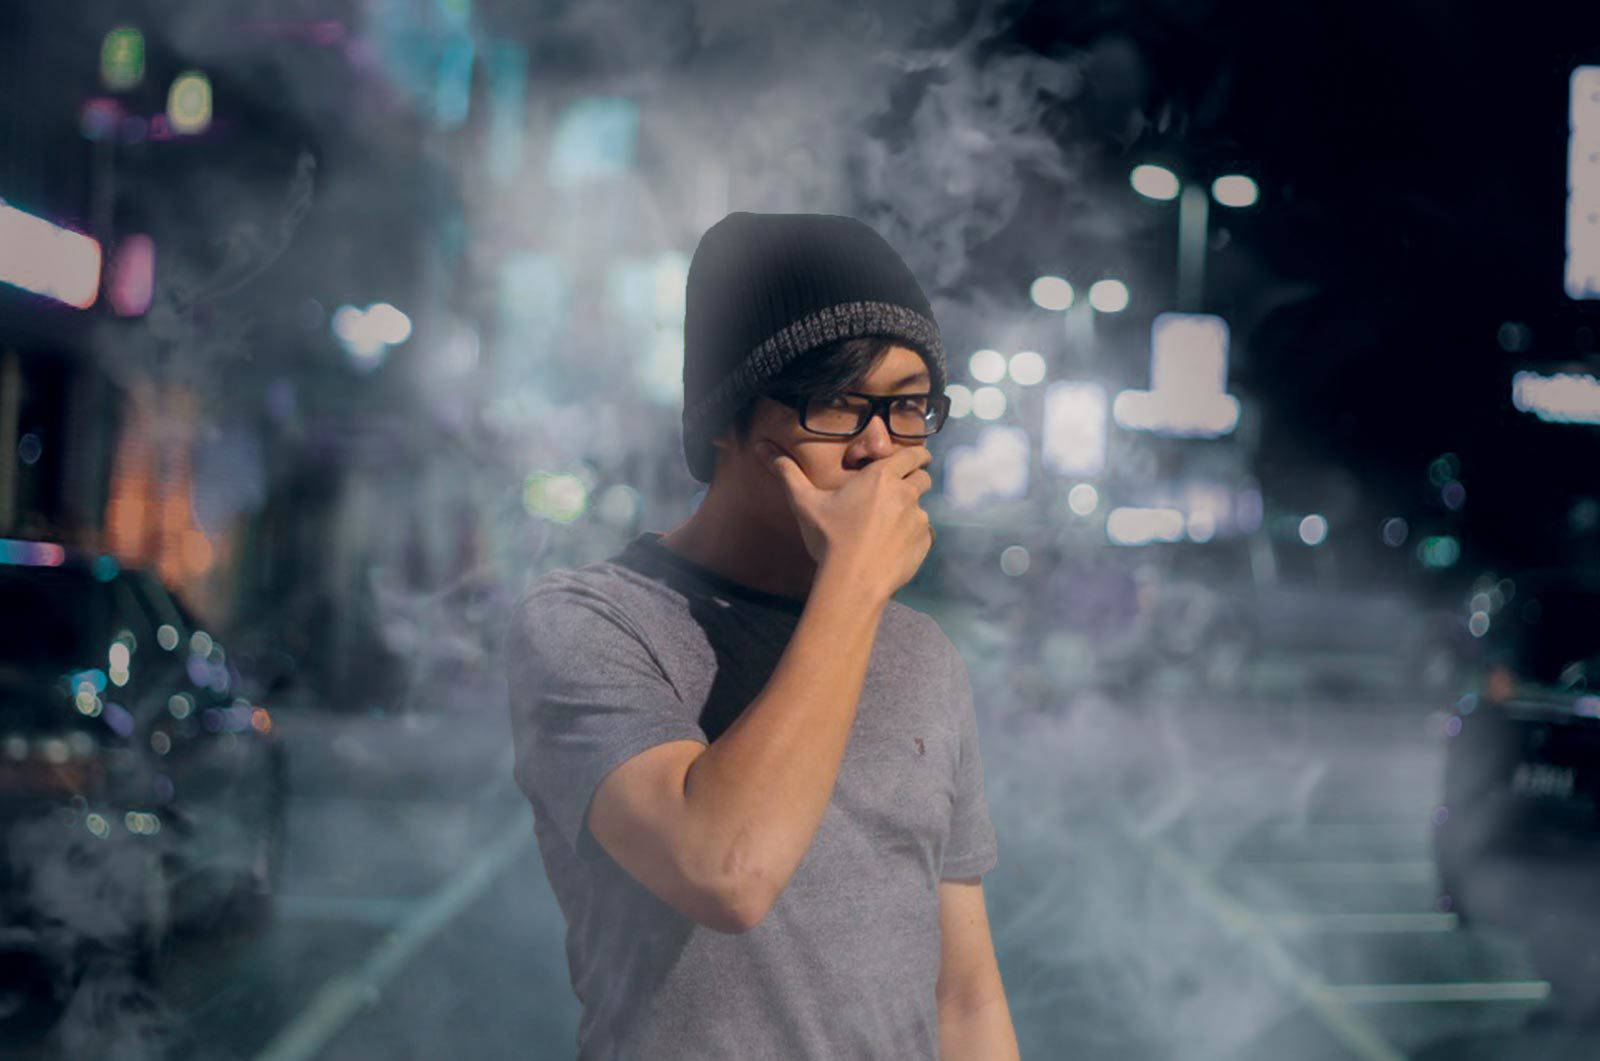 Man with hand over his mouth standing in street surrounded by smoke.